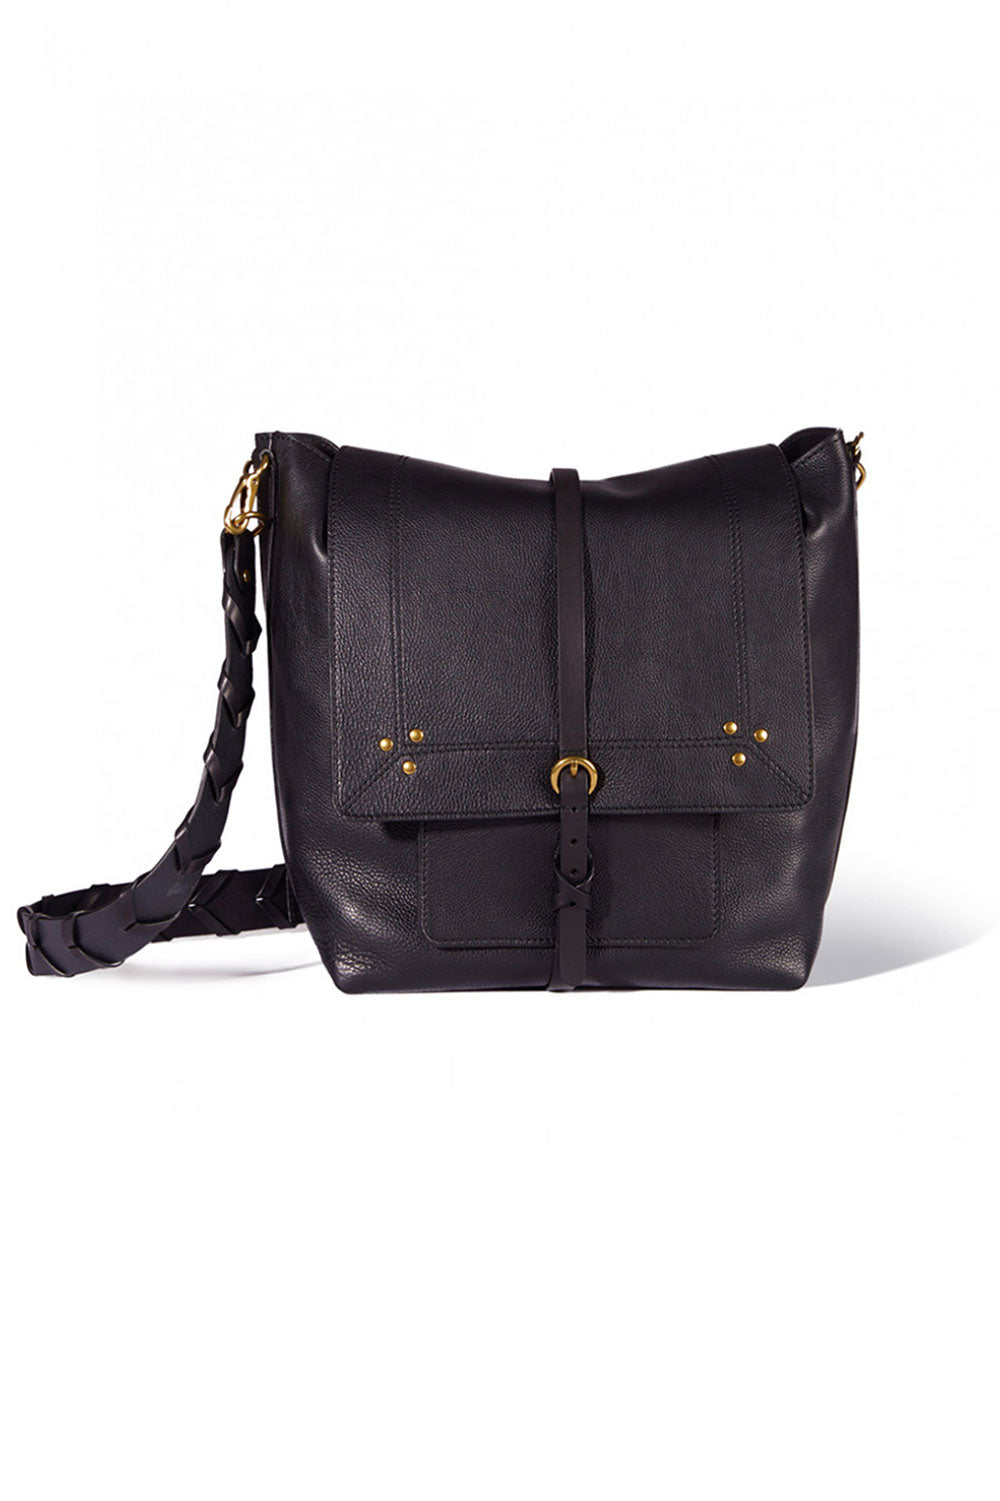 Django Black Bag